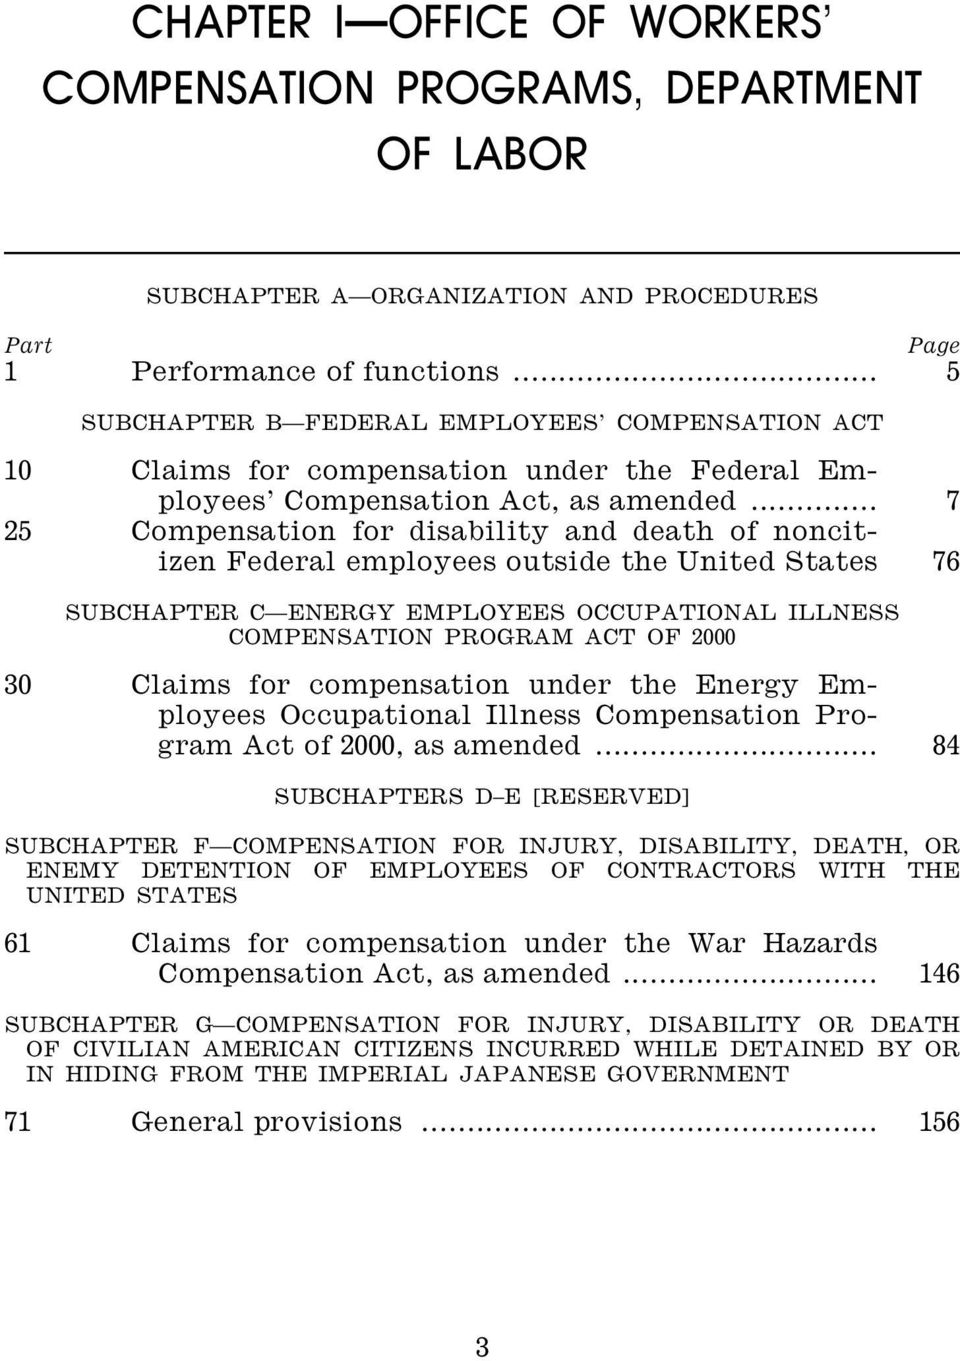 .. 7 25 Compensation for disability and death of noncitizen Federal employees outside the United States 76 SUBCHAPTER C ENERGY EMPLOYEES OCCUPATIONAL ILLNESS COMPENSATION PROGRAM ACT OF 2000 30